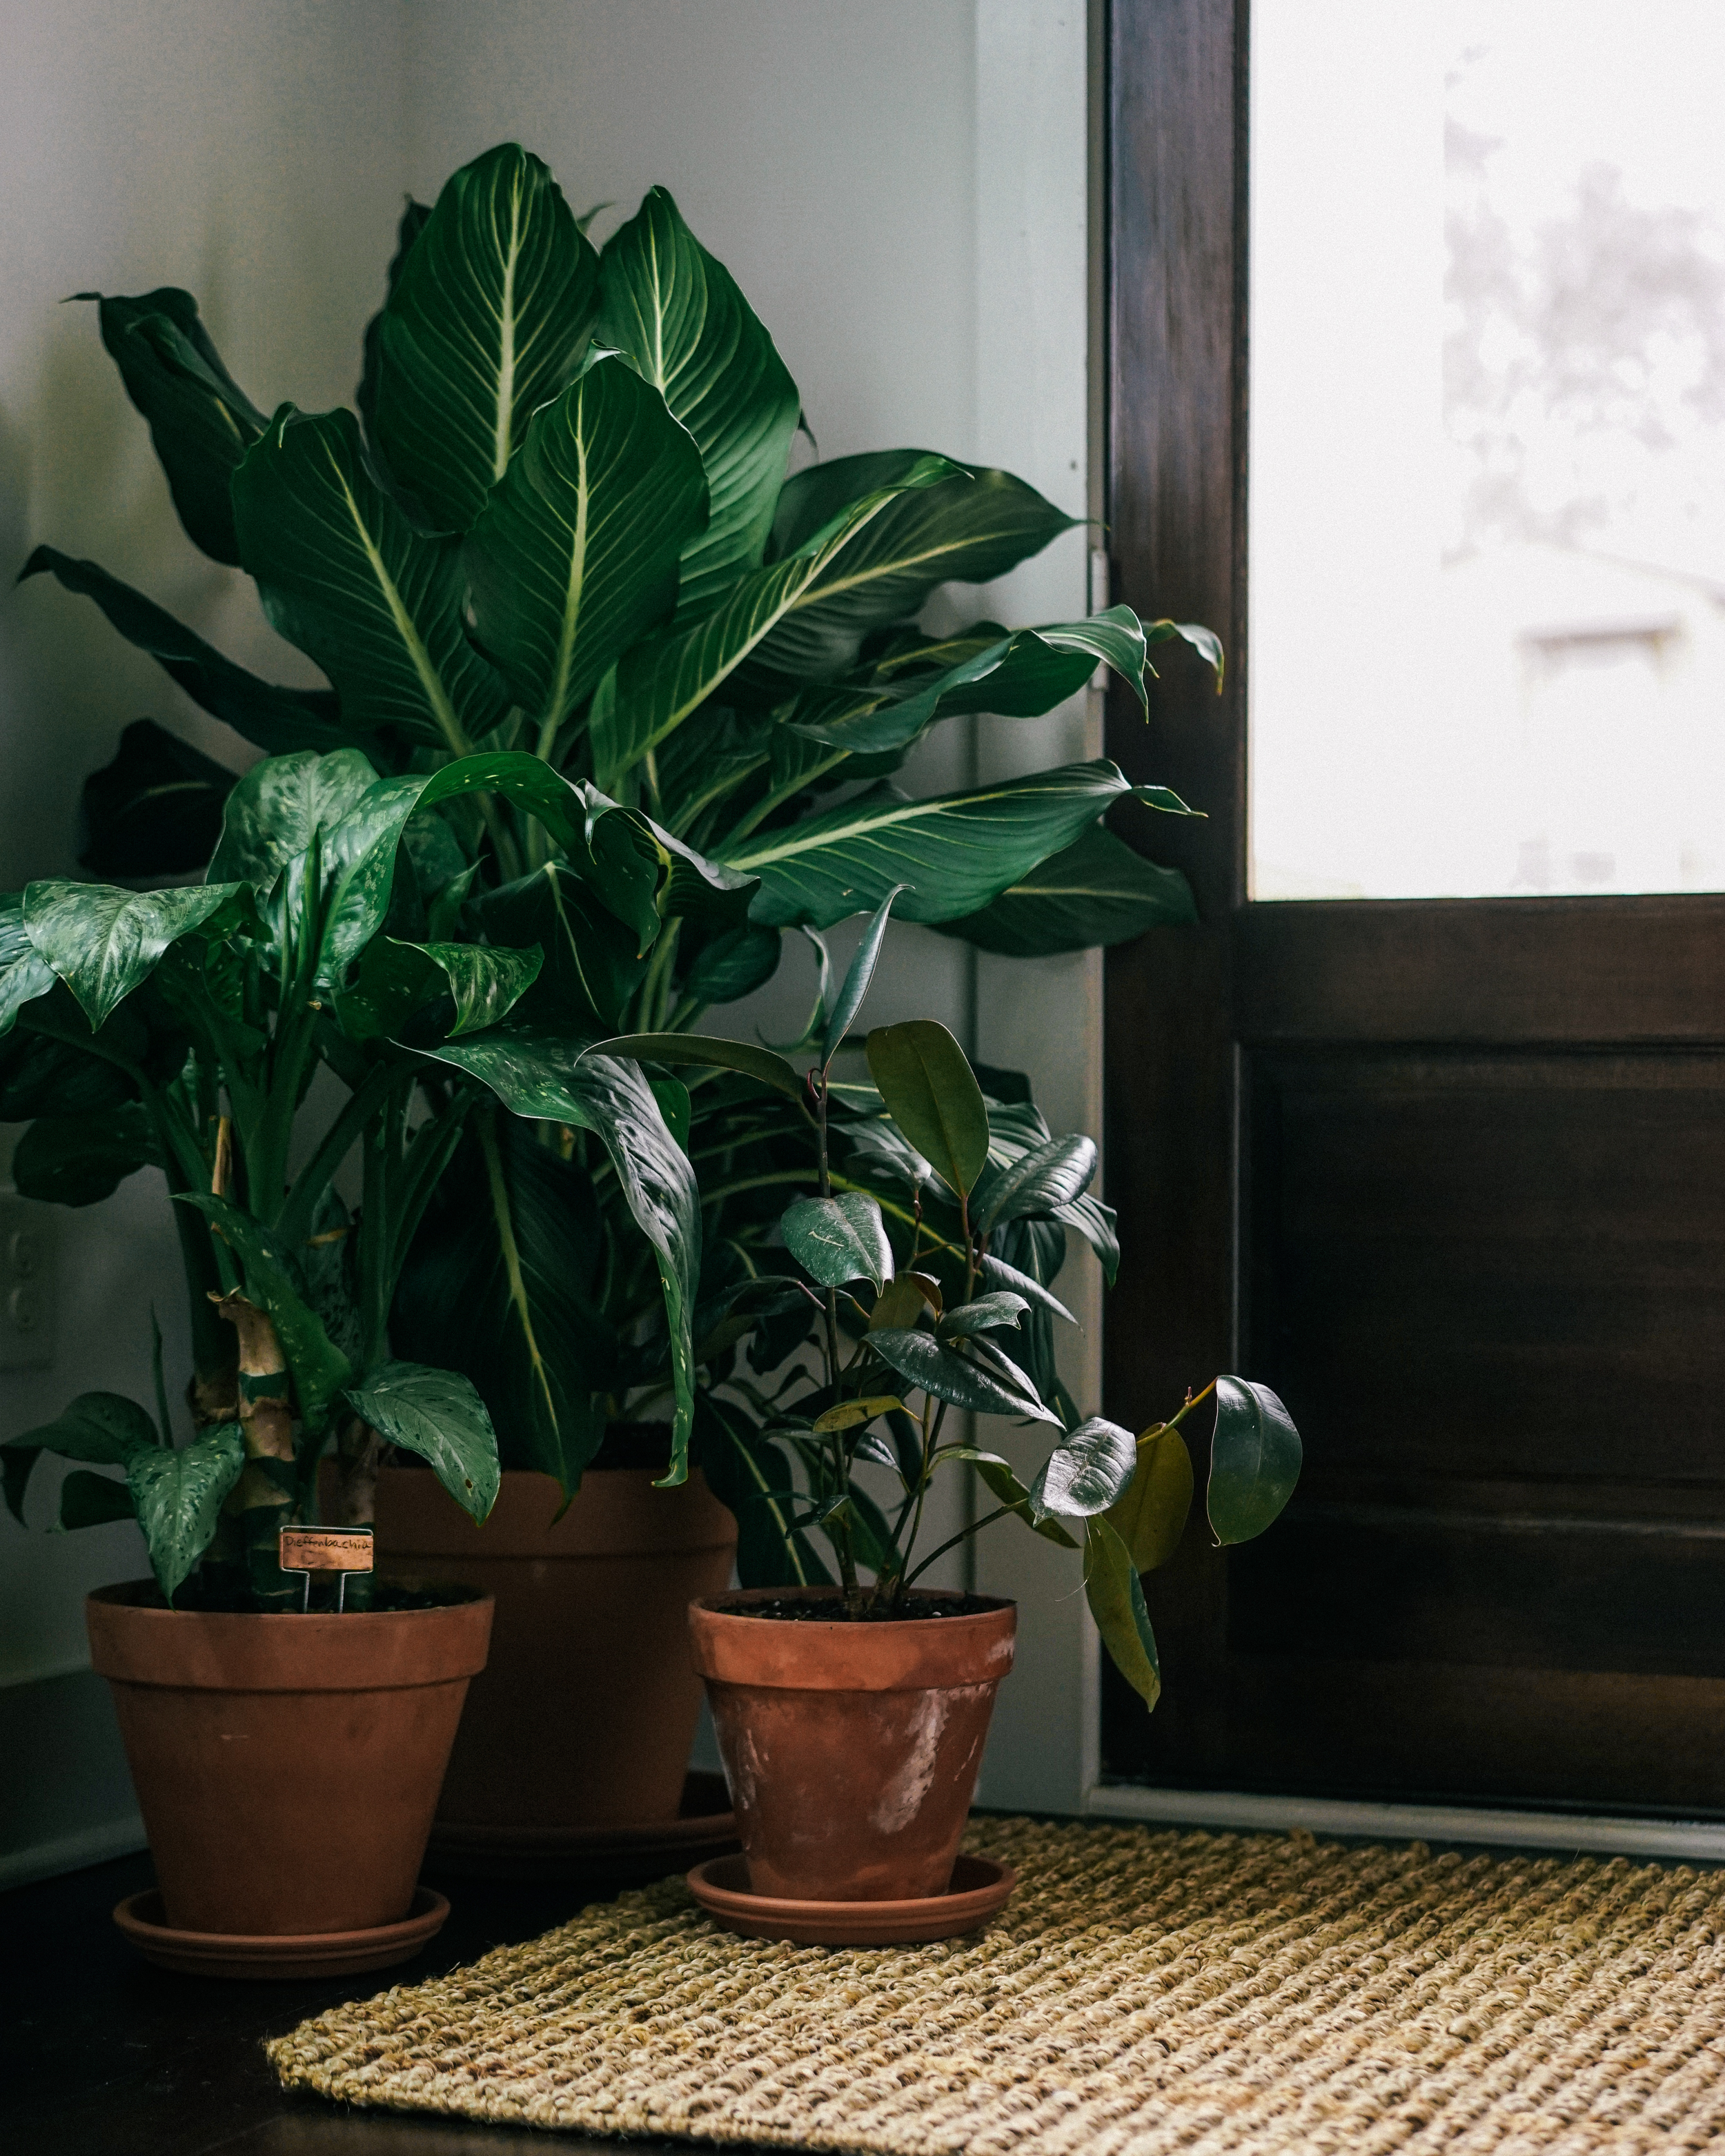 Organizing with House Plants and UncommonGoods